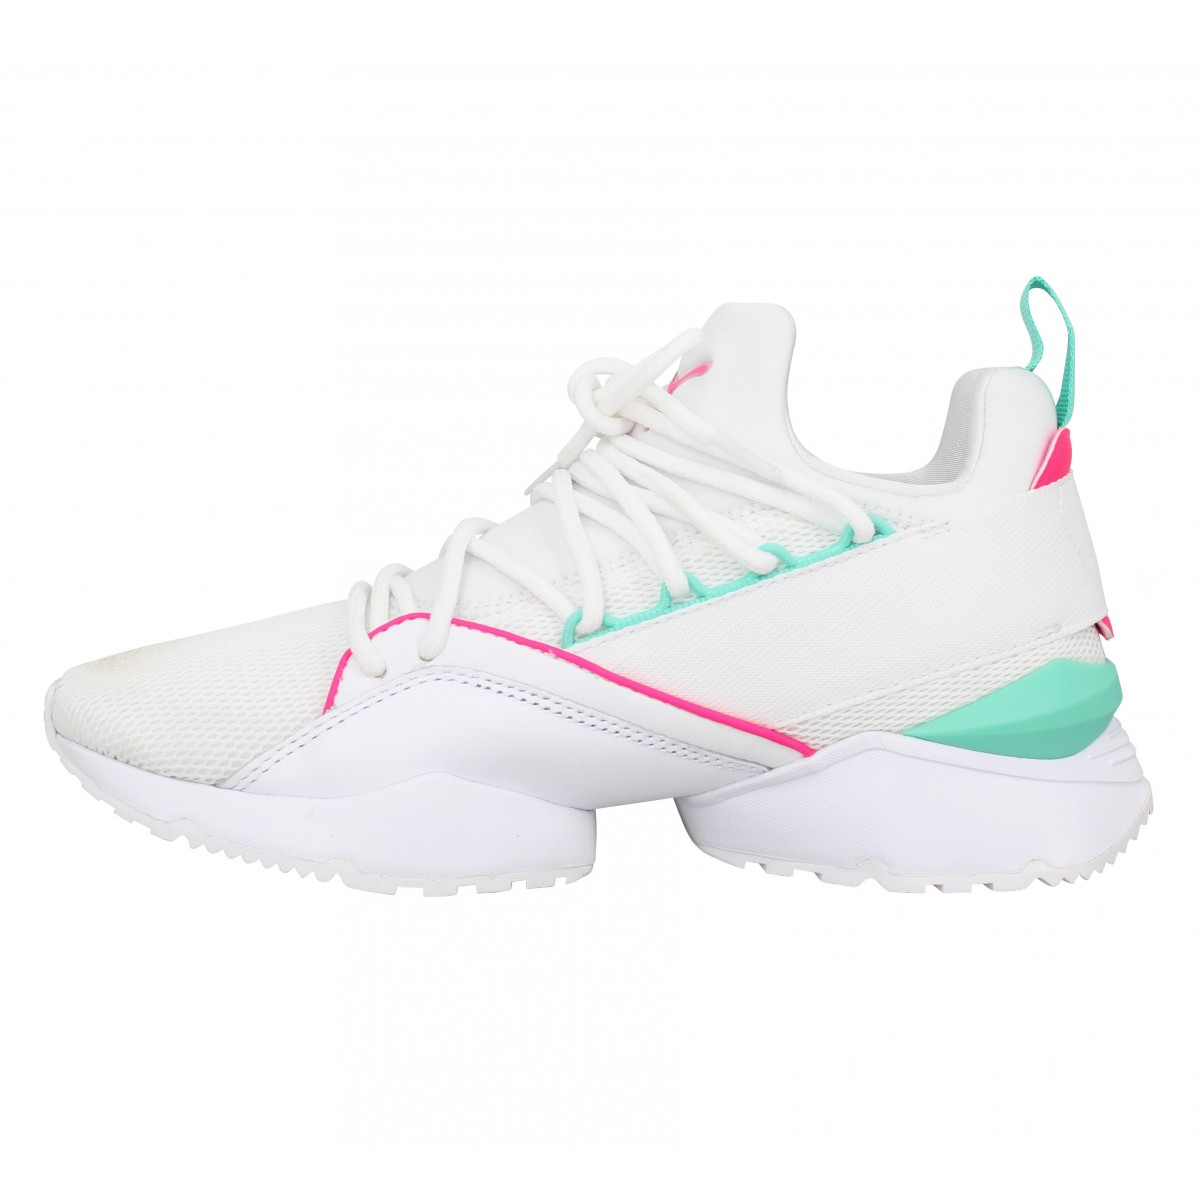 Muse Toile Dxfax Maia Blanc Chaussures Fanny Puma Femme zVpGSMUq